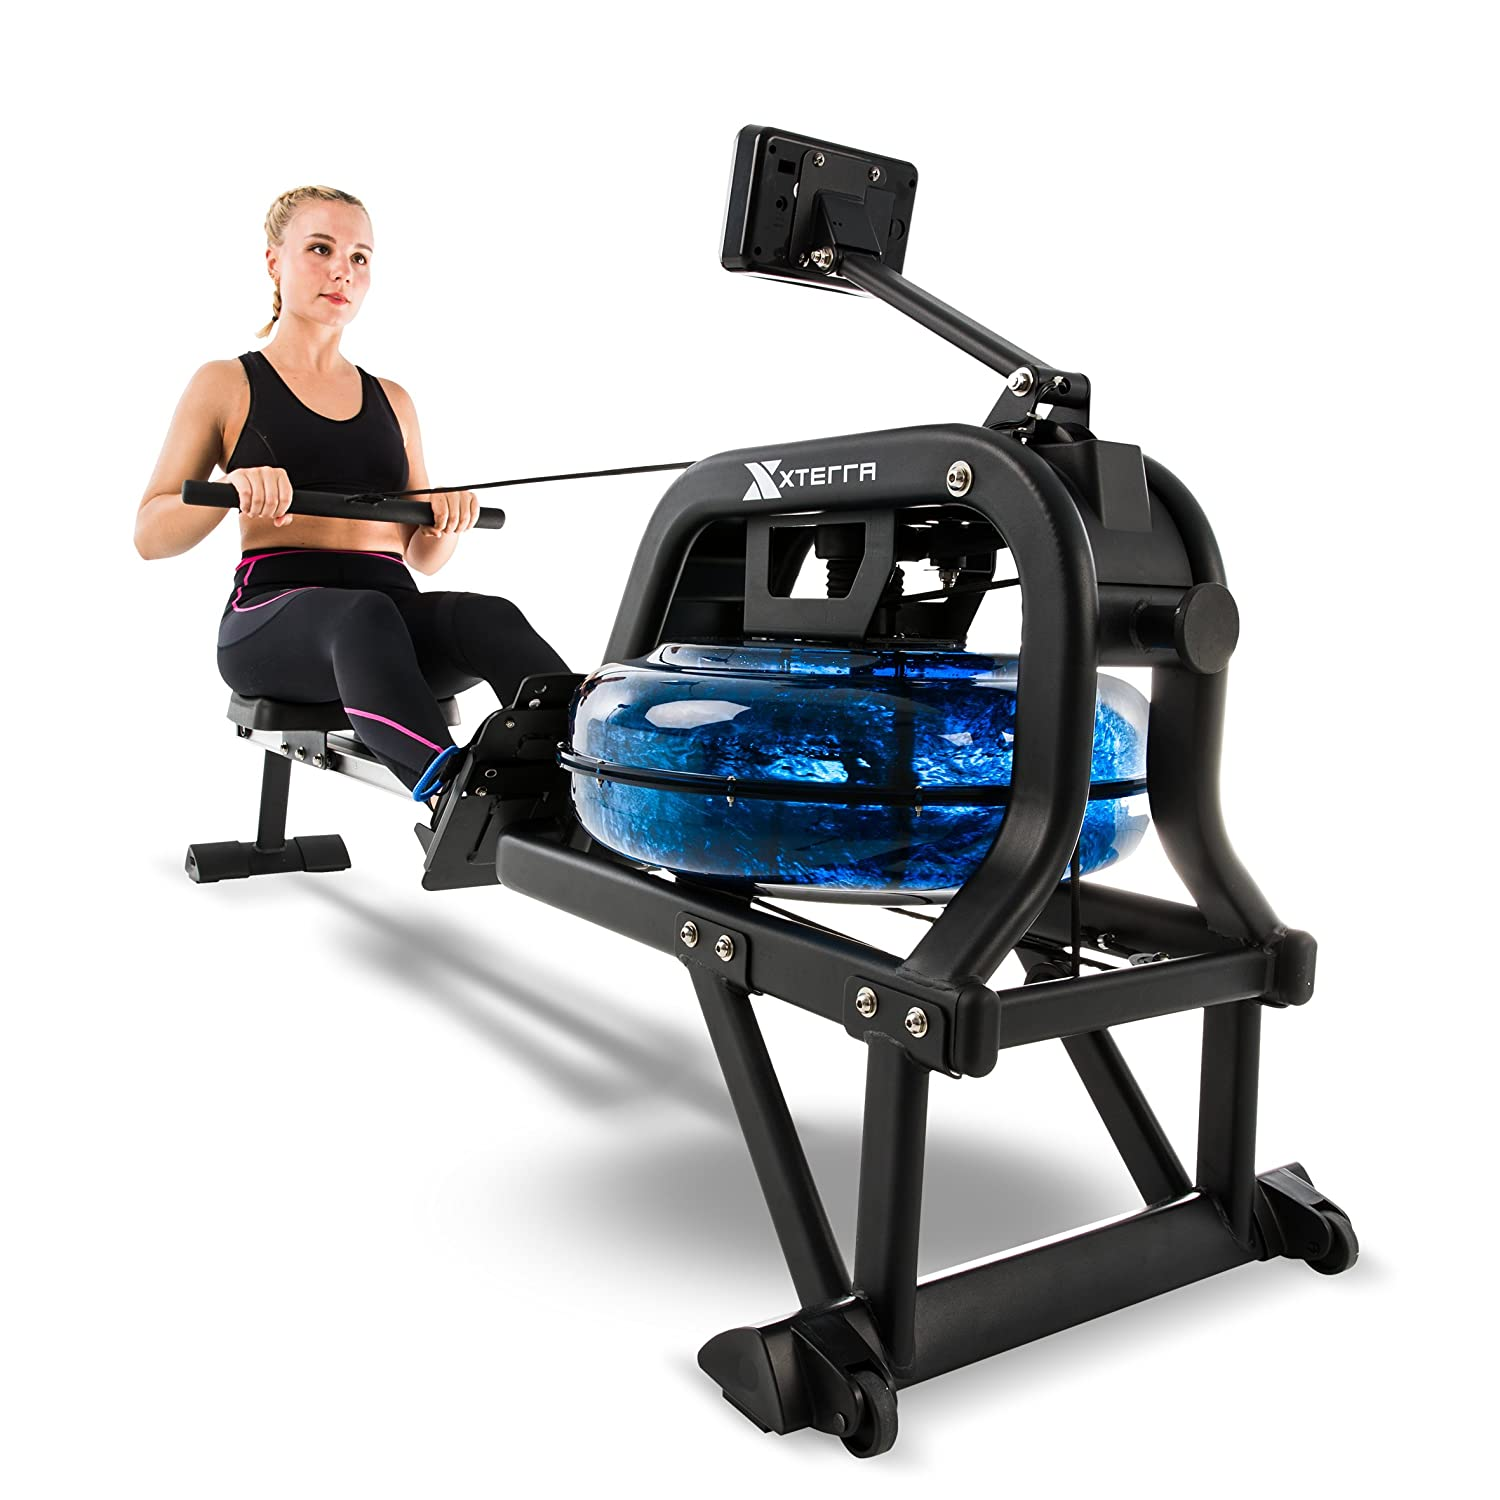 XTERRA Fitness ERG600W – Most Advanced Rowing Machine For The Price